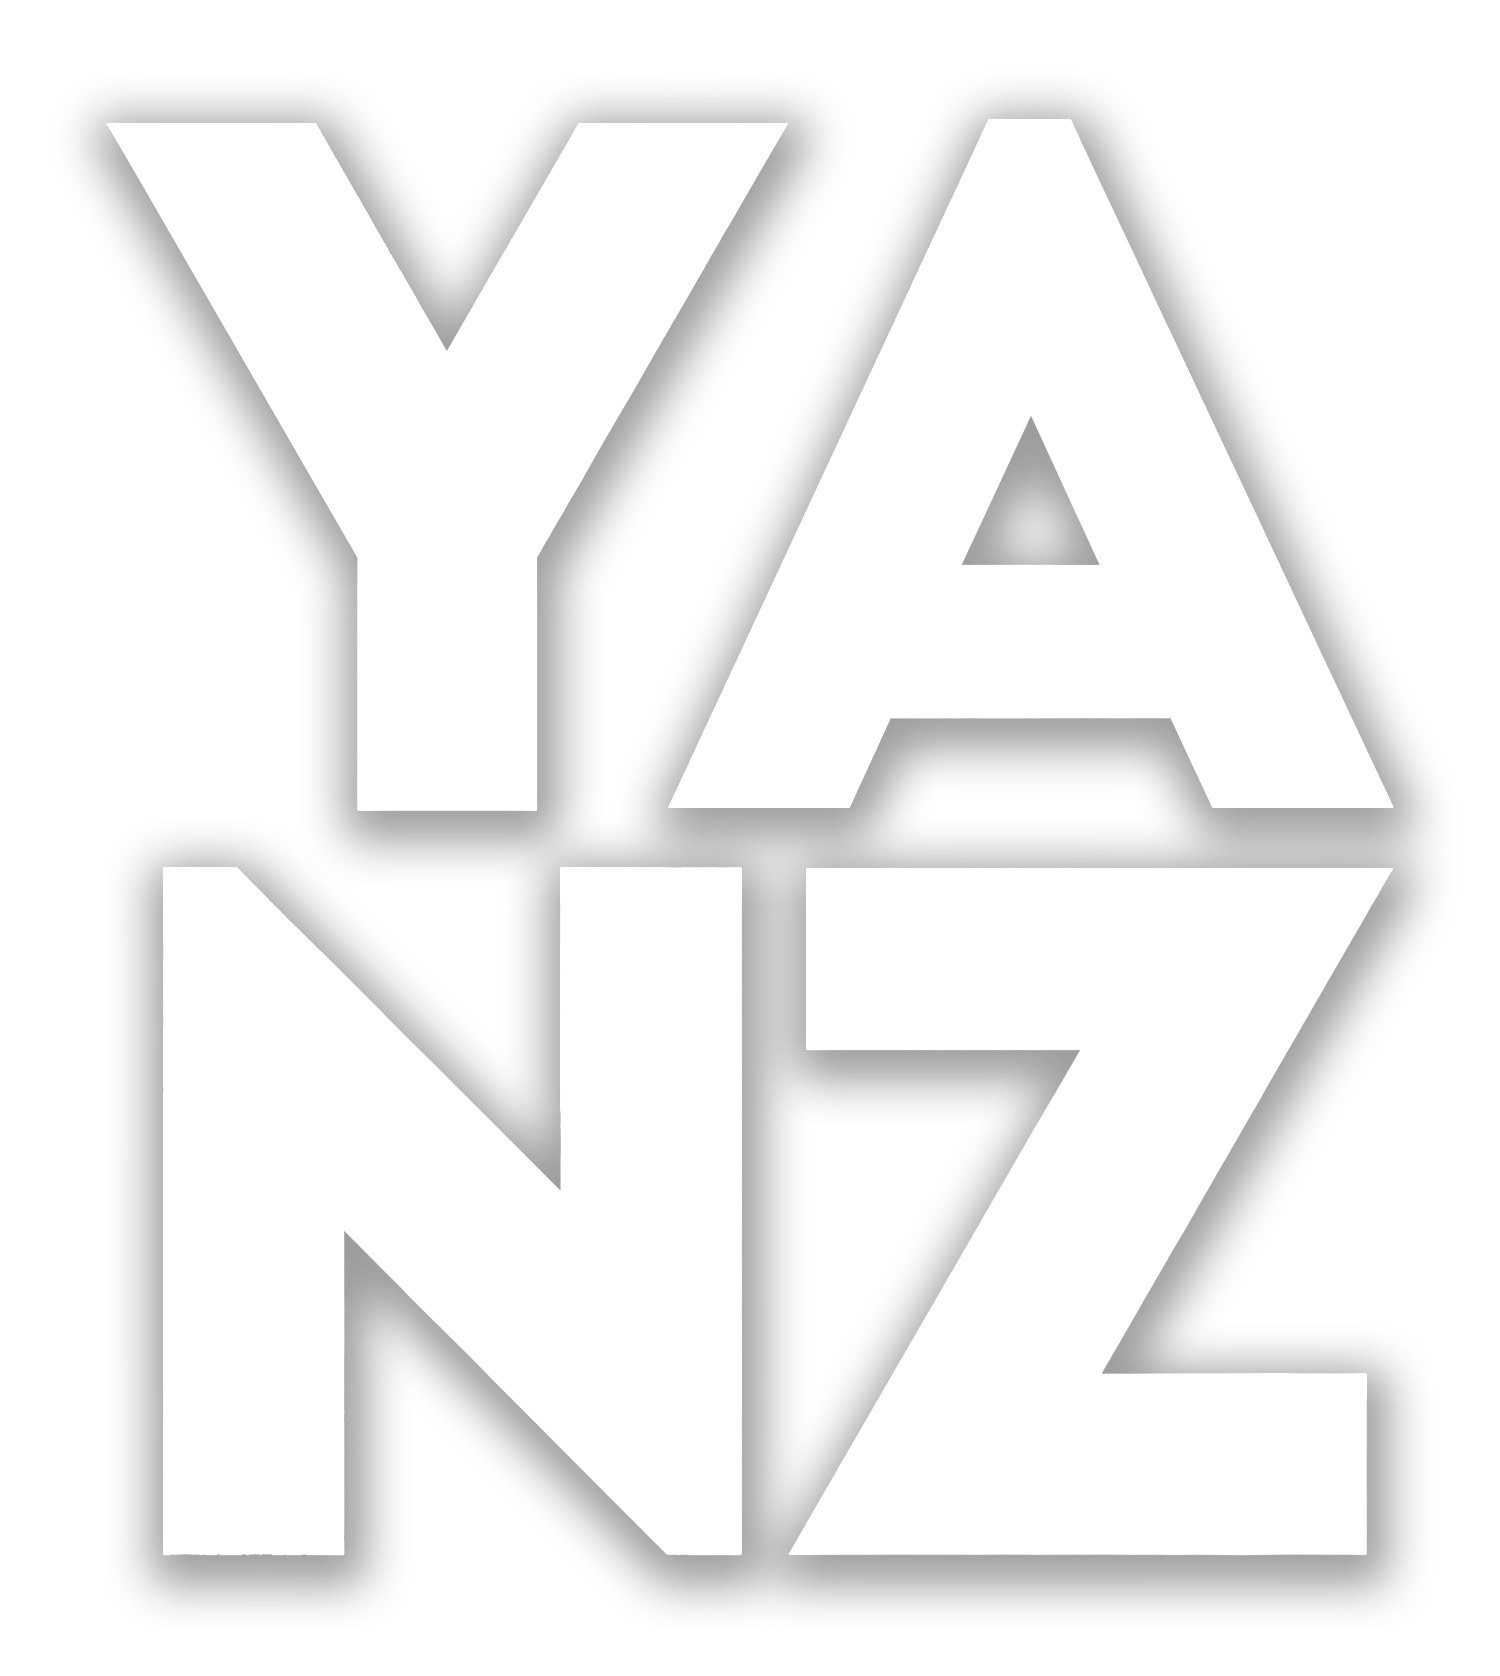 Youth Arts New Zealand